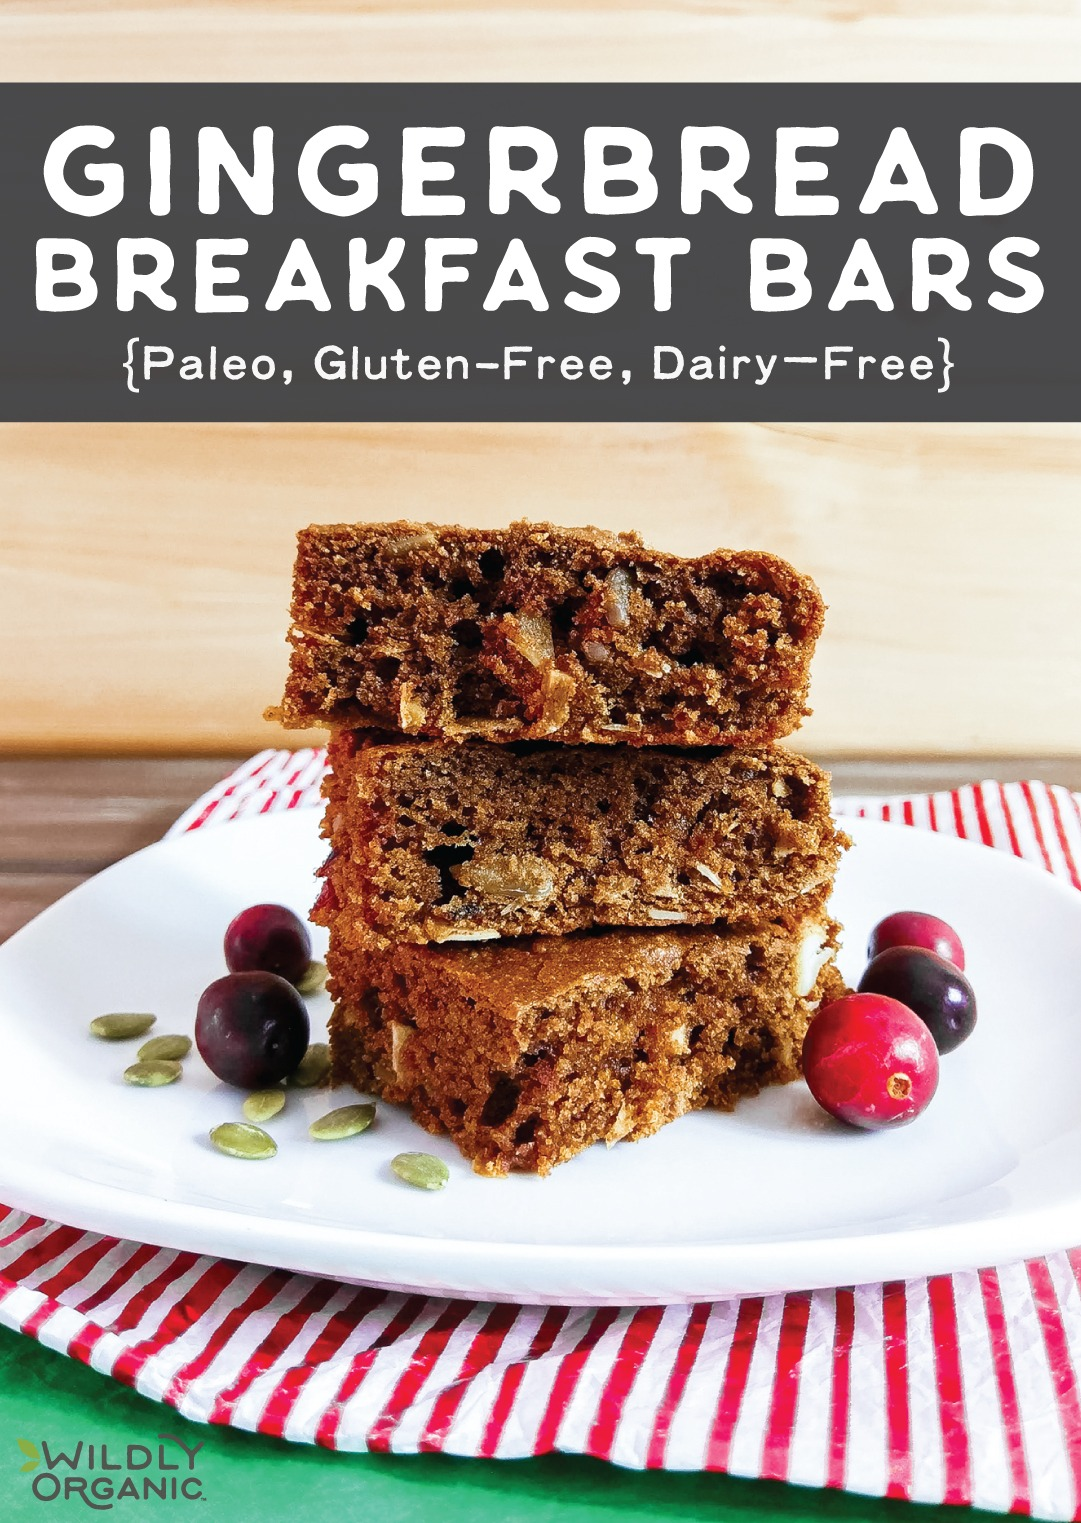 A photo of a stack of three gingerbread breakfast bars with pumpkin seeds and cranberries on a white plate.